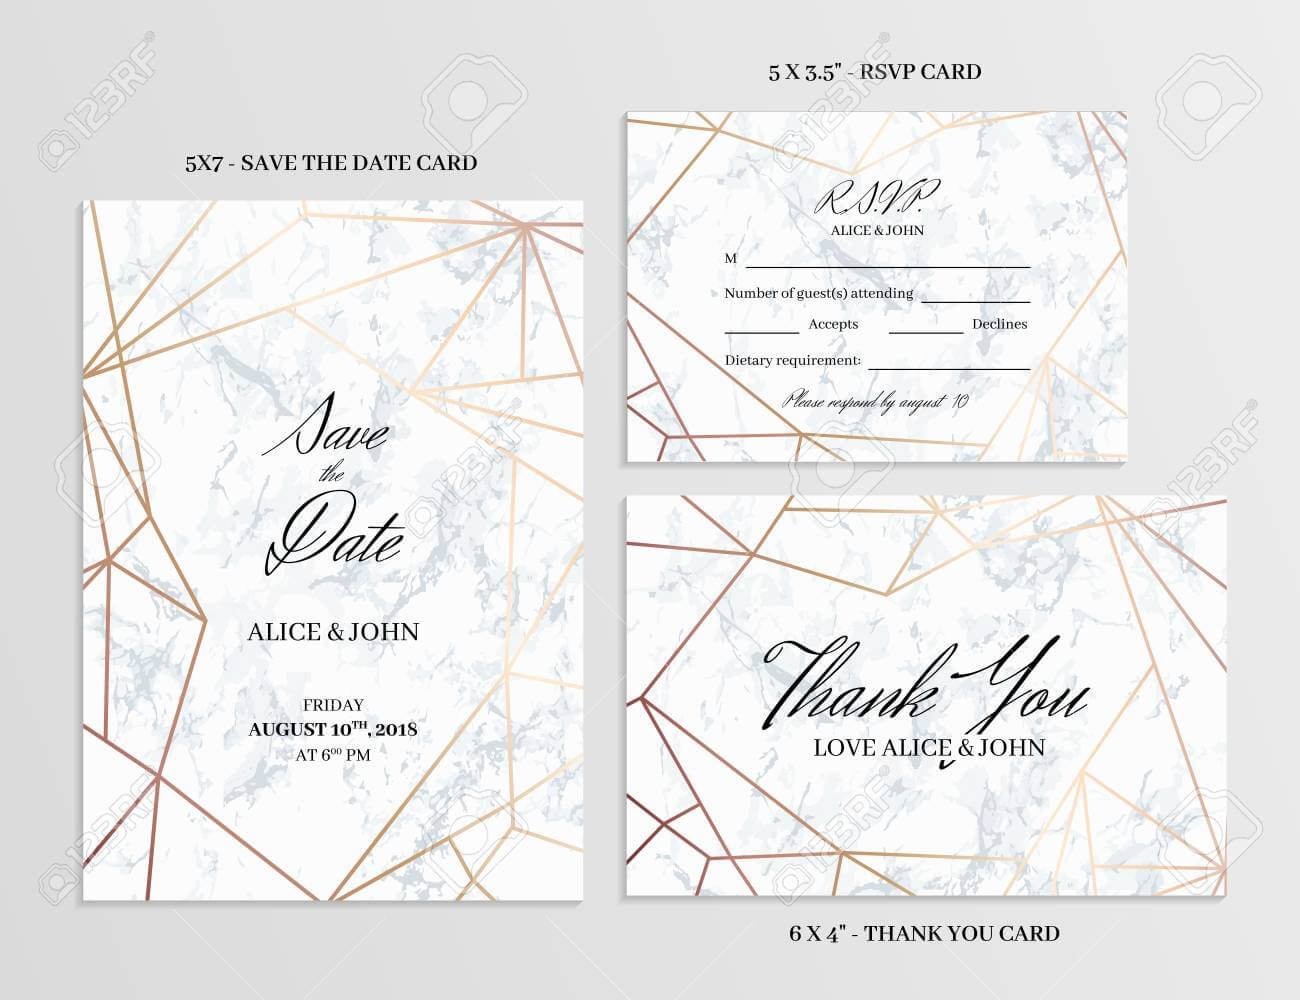 006 Wedding Set Save The Date Thank You And R S V P Cards For Template For Rsvp Cards For Wedding